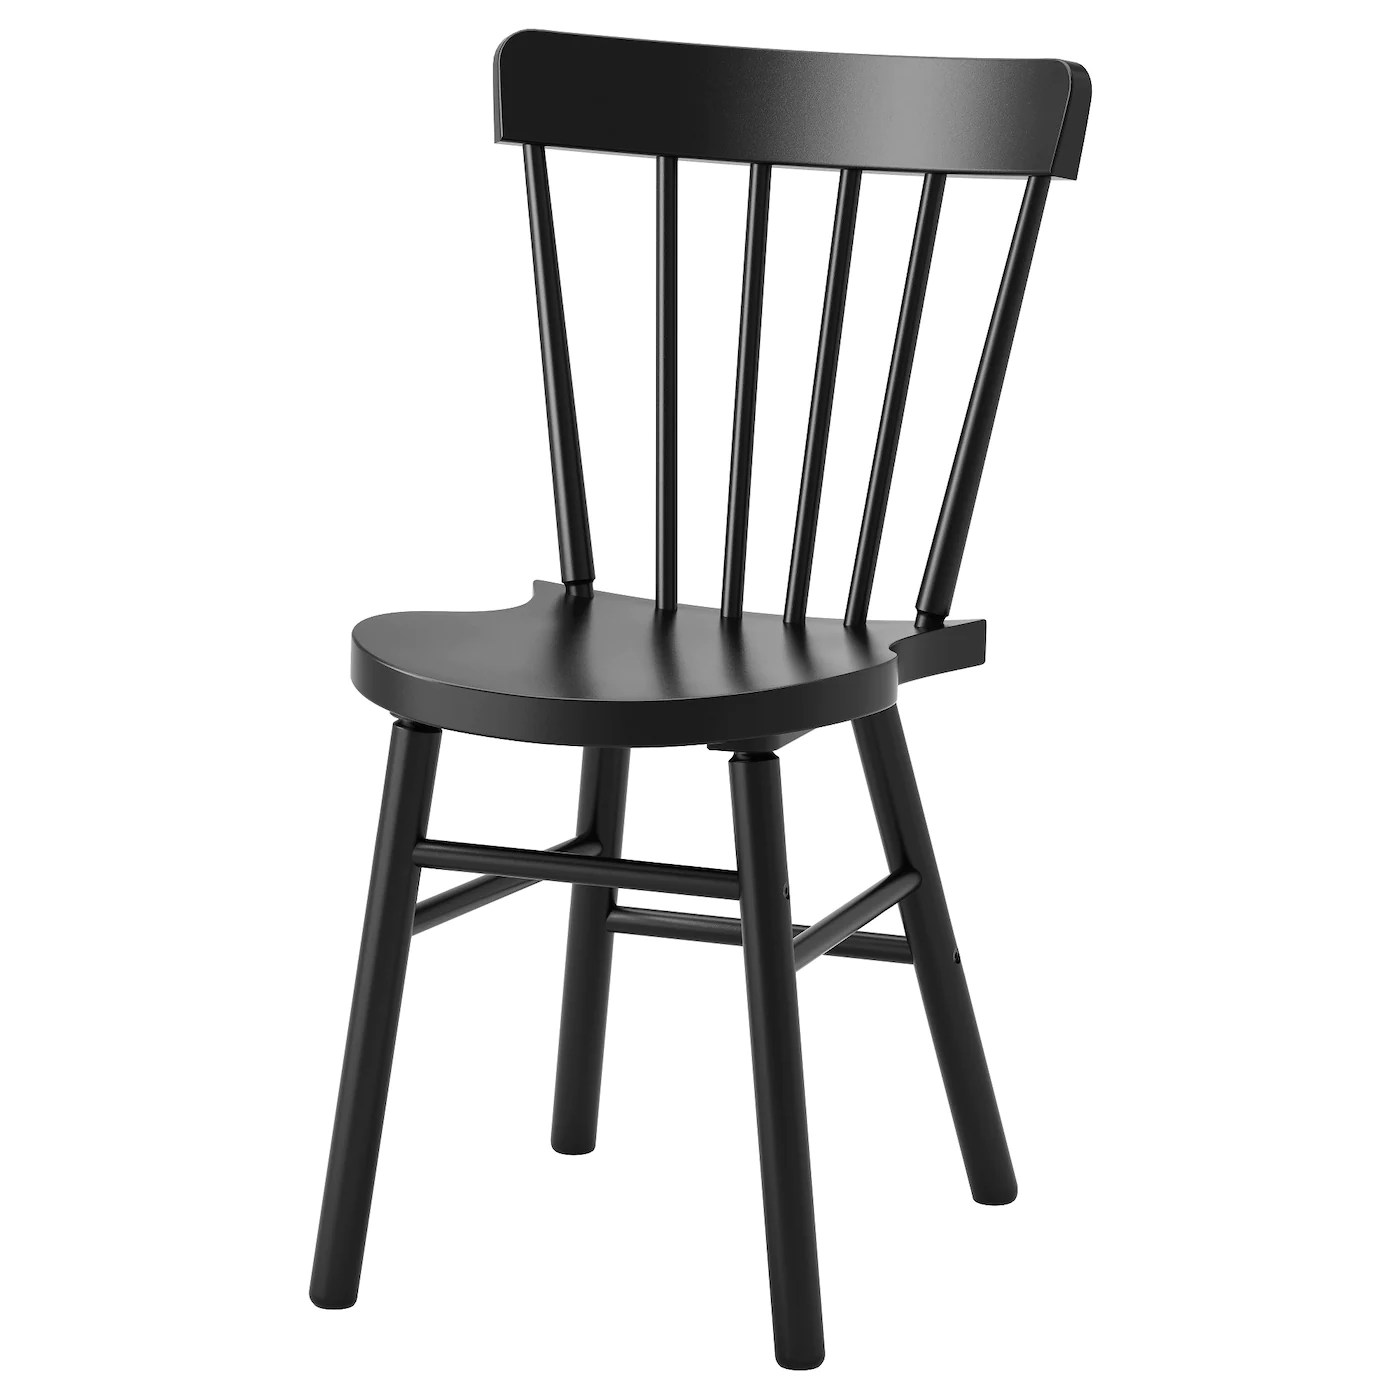 Ikea Black Chair Norraryd Chair Black Ikea